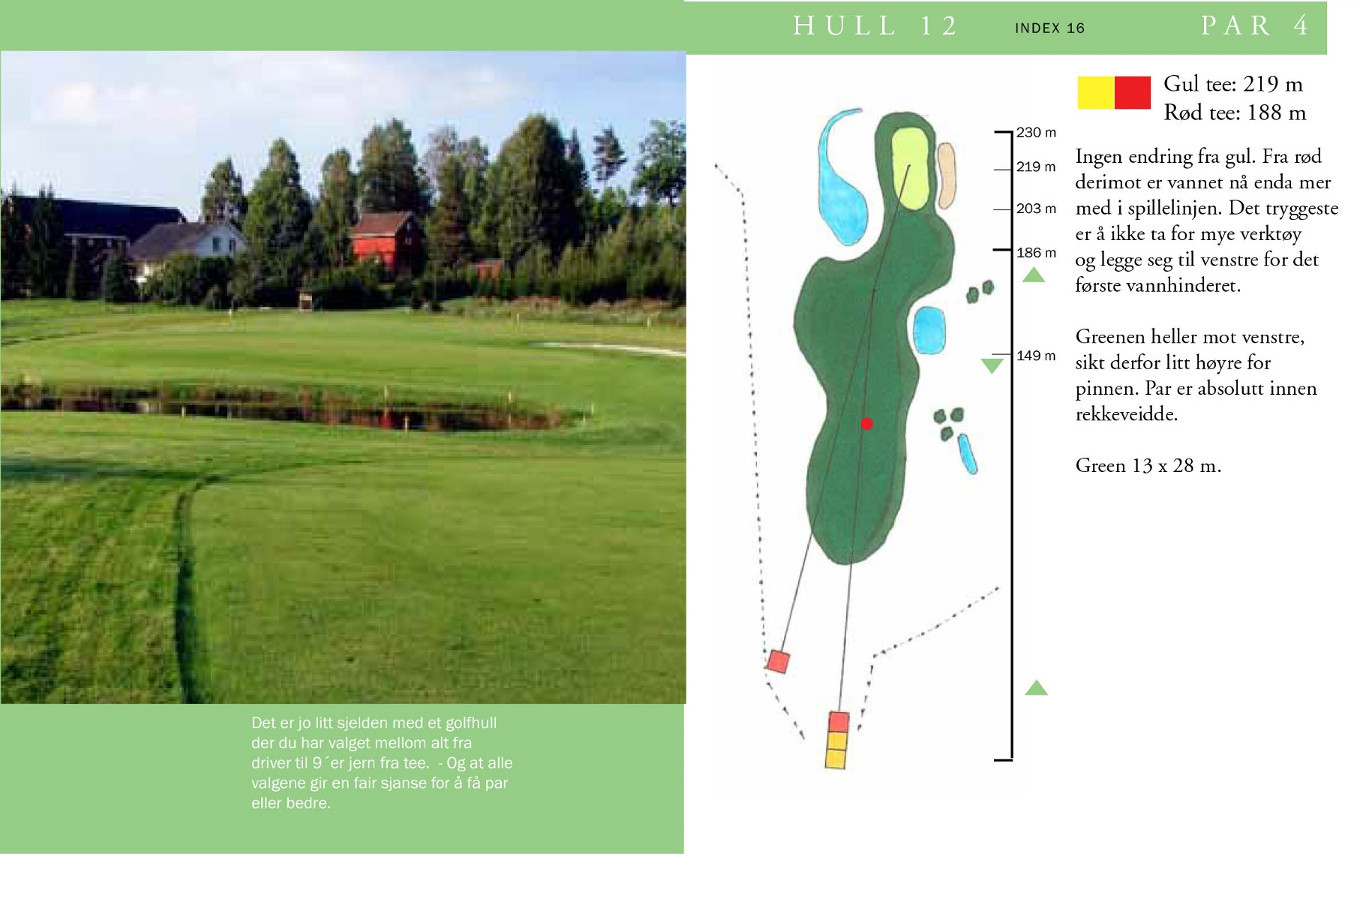 Hull 12 (Par 4, Indeks 16)